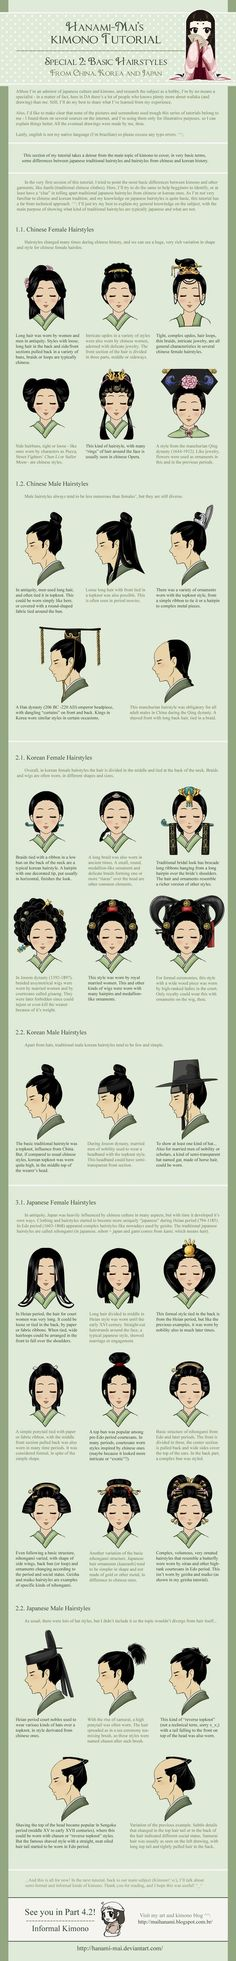 hairstyles | Kimono Tutorial - Special 02 | by Hanami-Mai.devian... on @DeviantArt